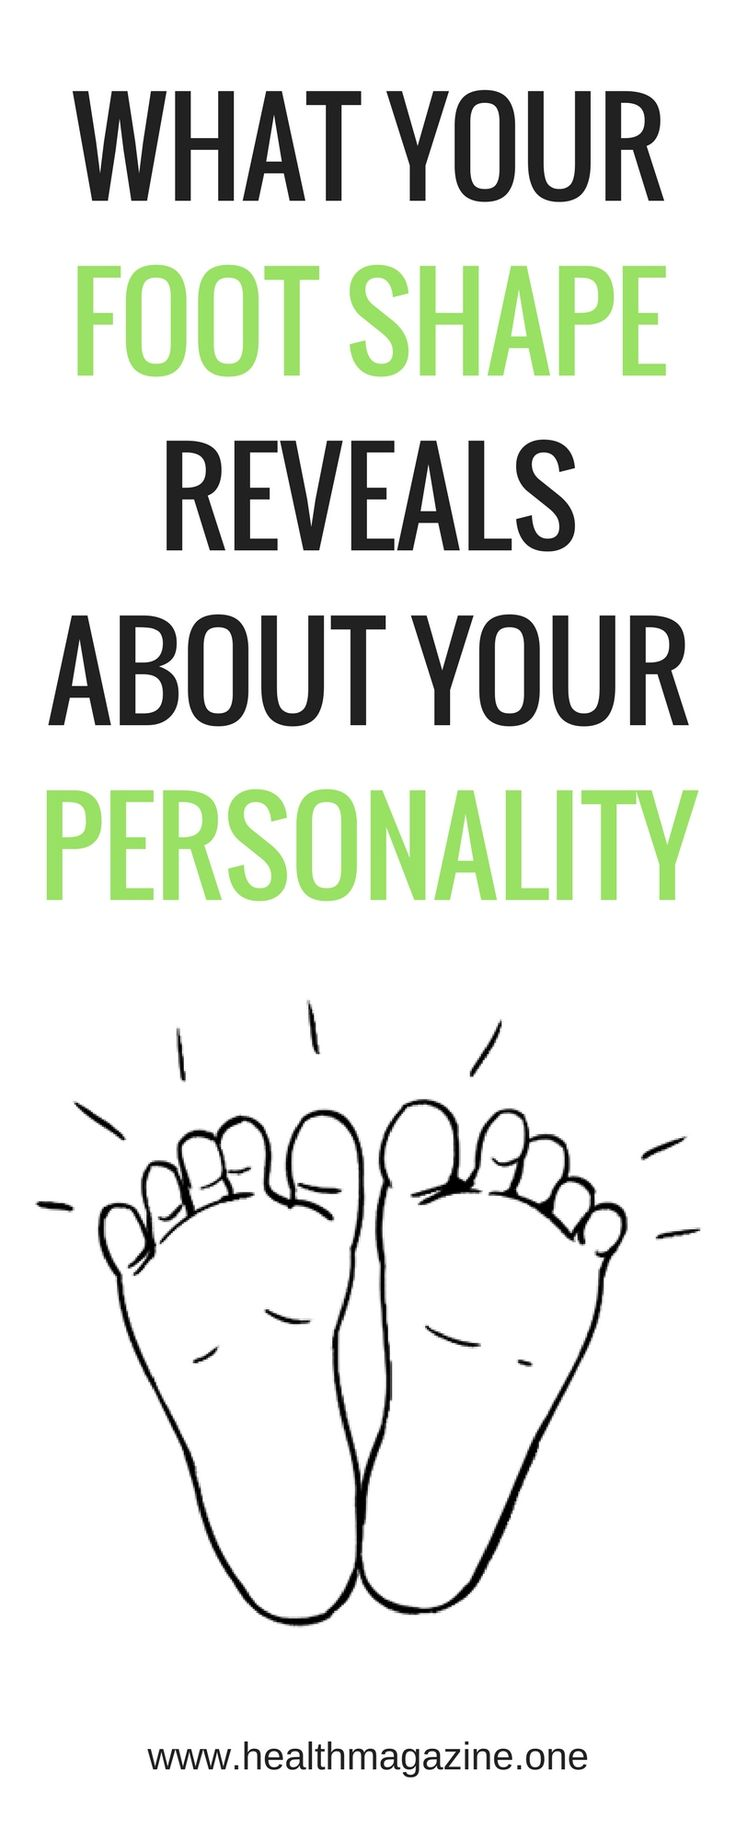 What the Shape of Your Foot Reveals About Your Personality